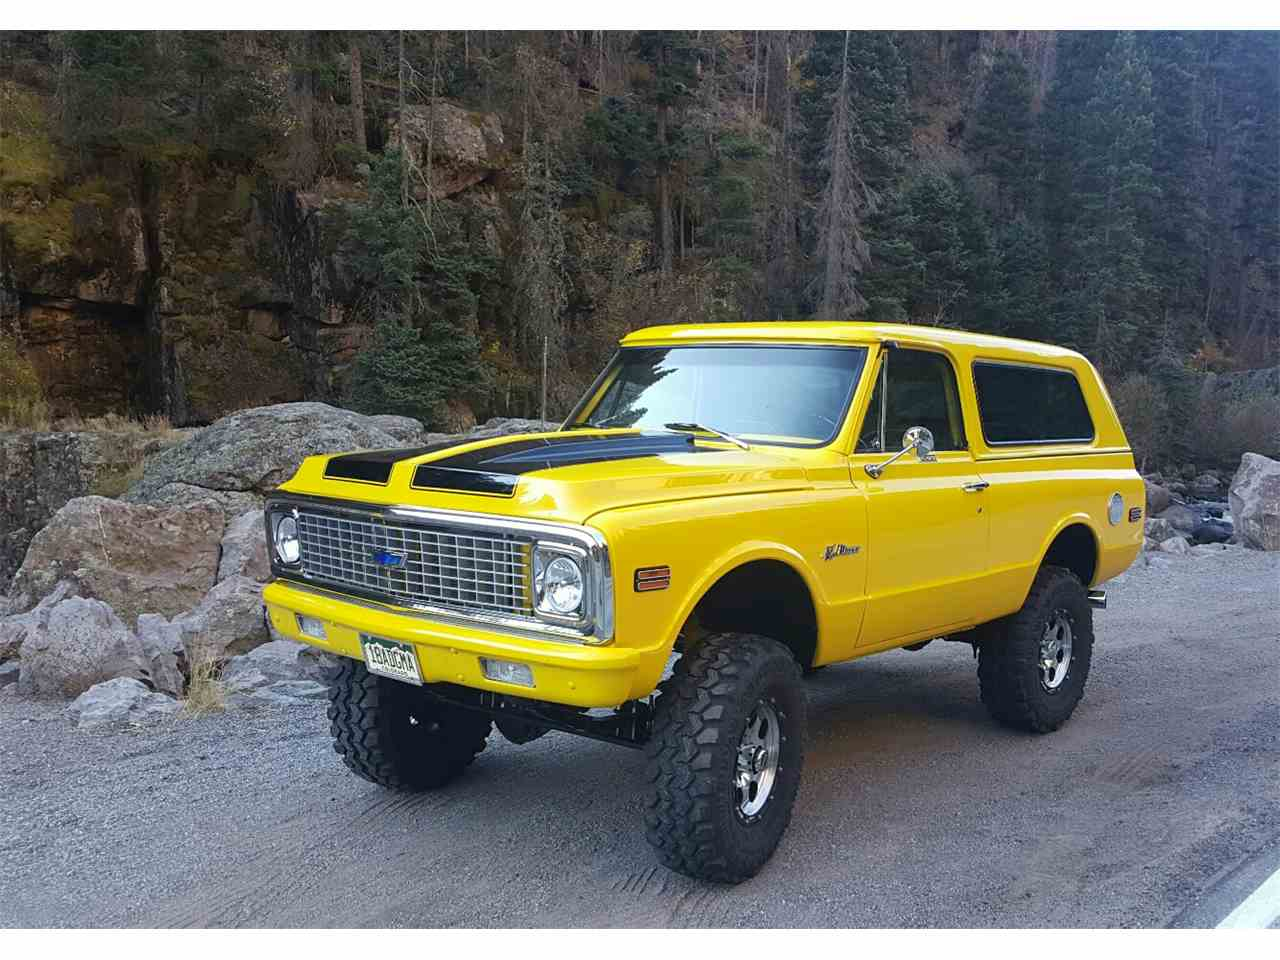 Chevrolet Blazer For Sale Hemmings Motor News Autos Post